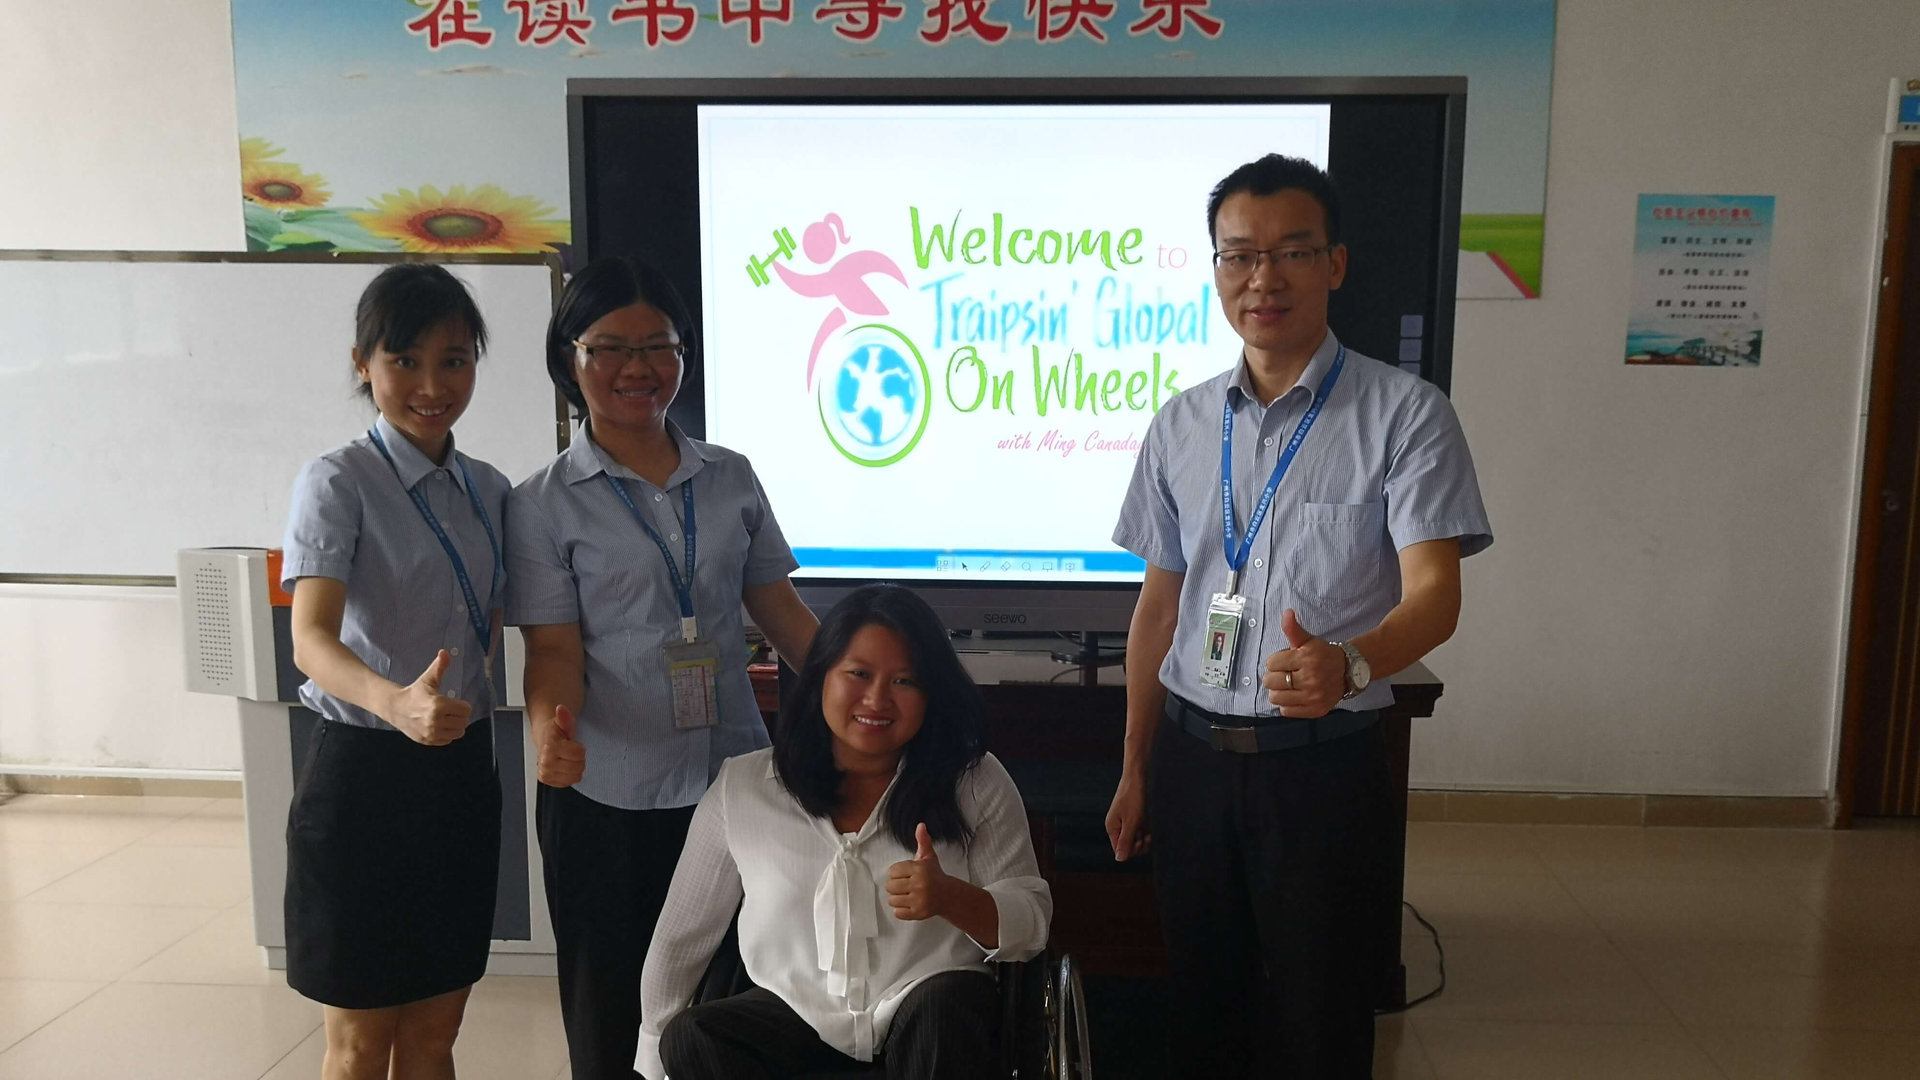 Ming and staffers giving thumbs up signs